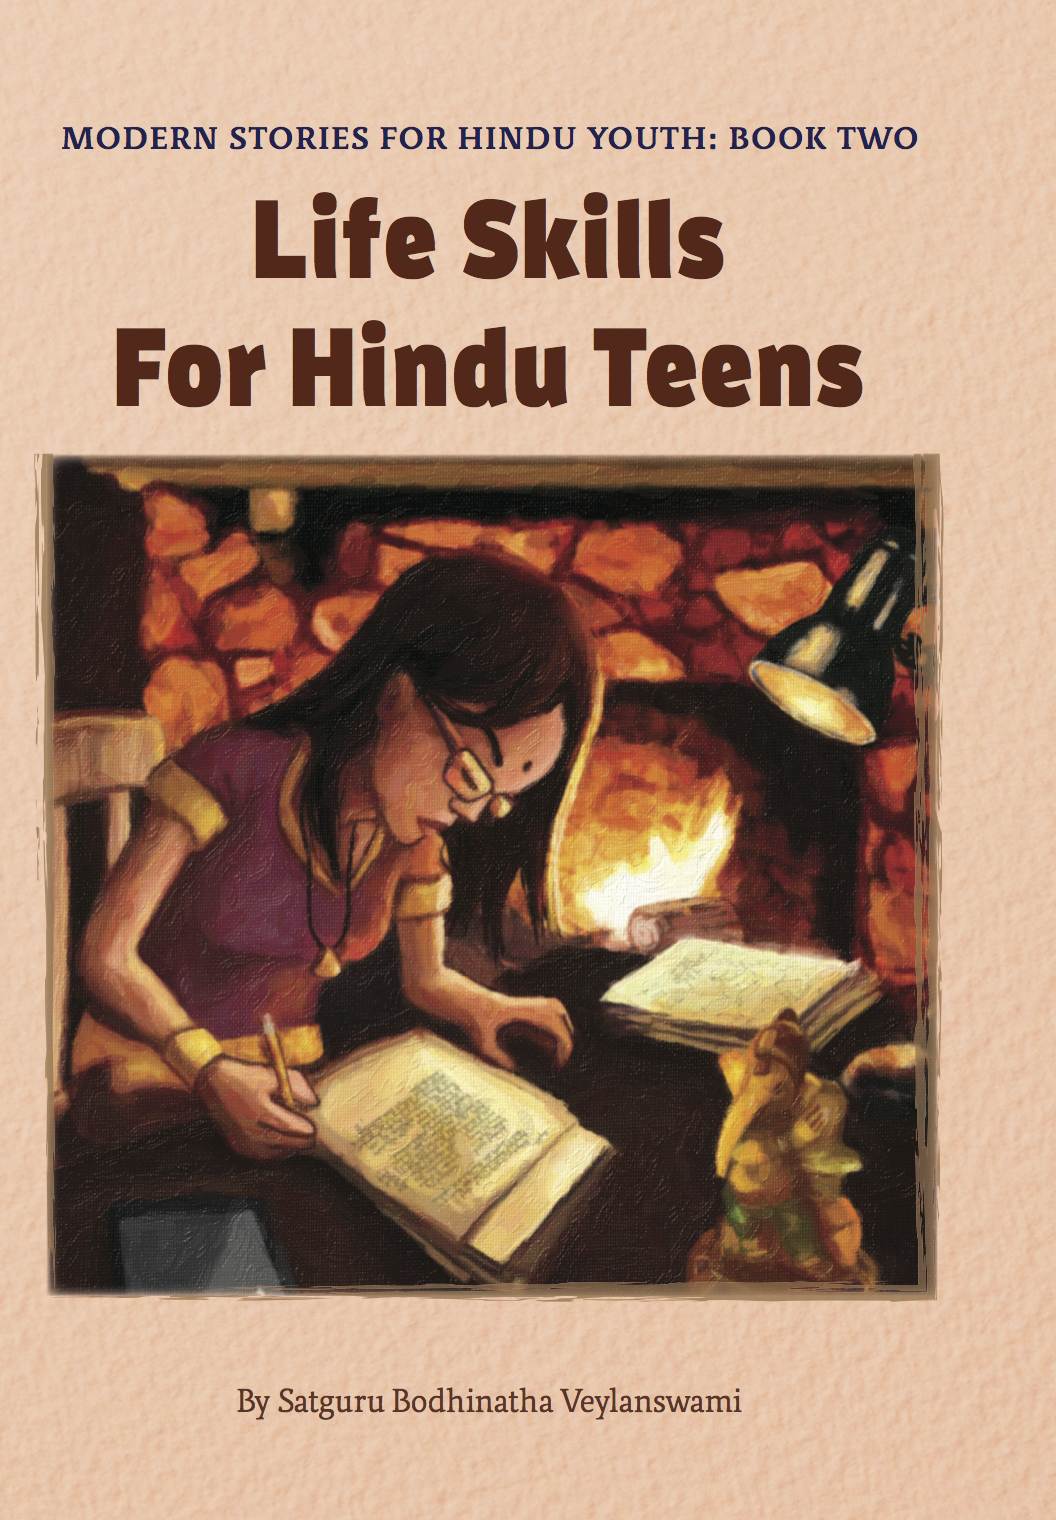 Life Skills for Hindu Teens